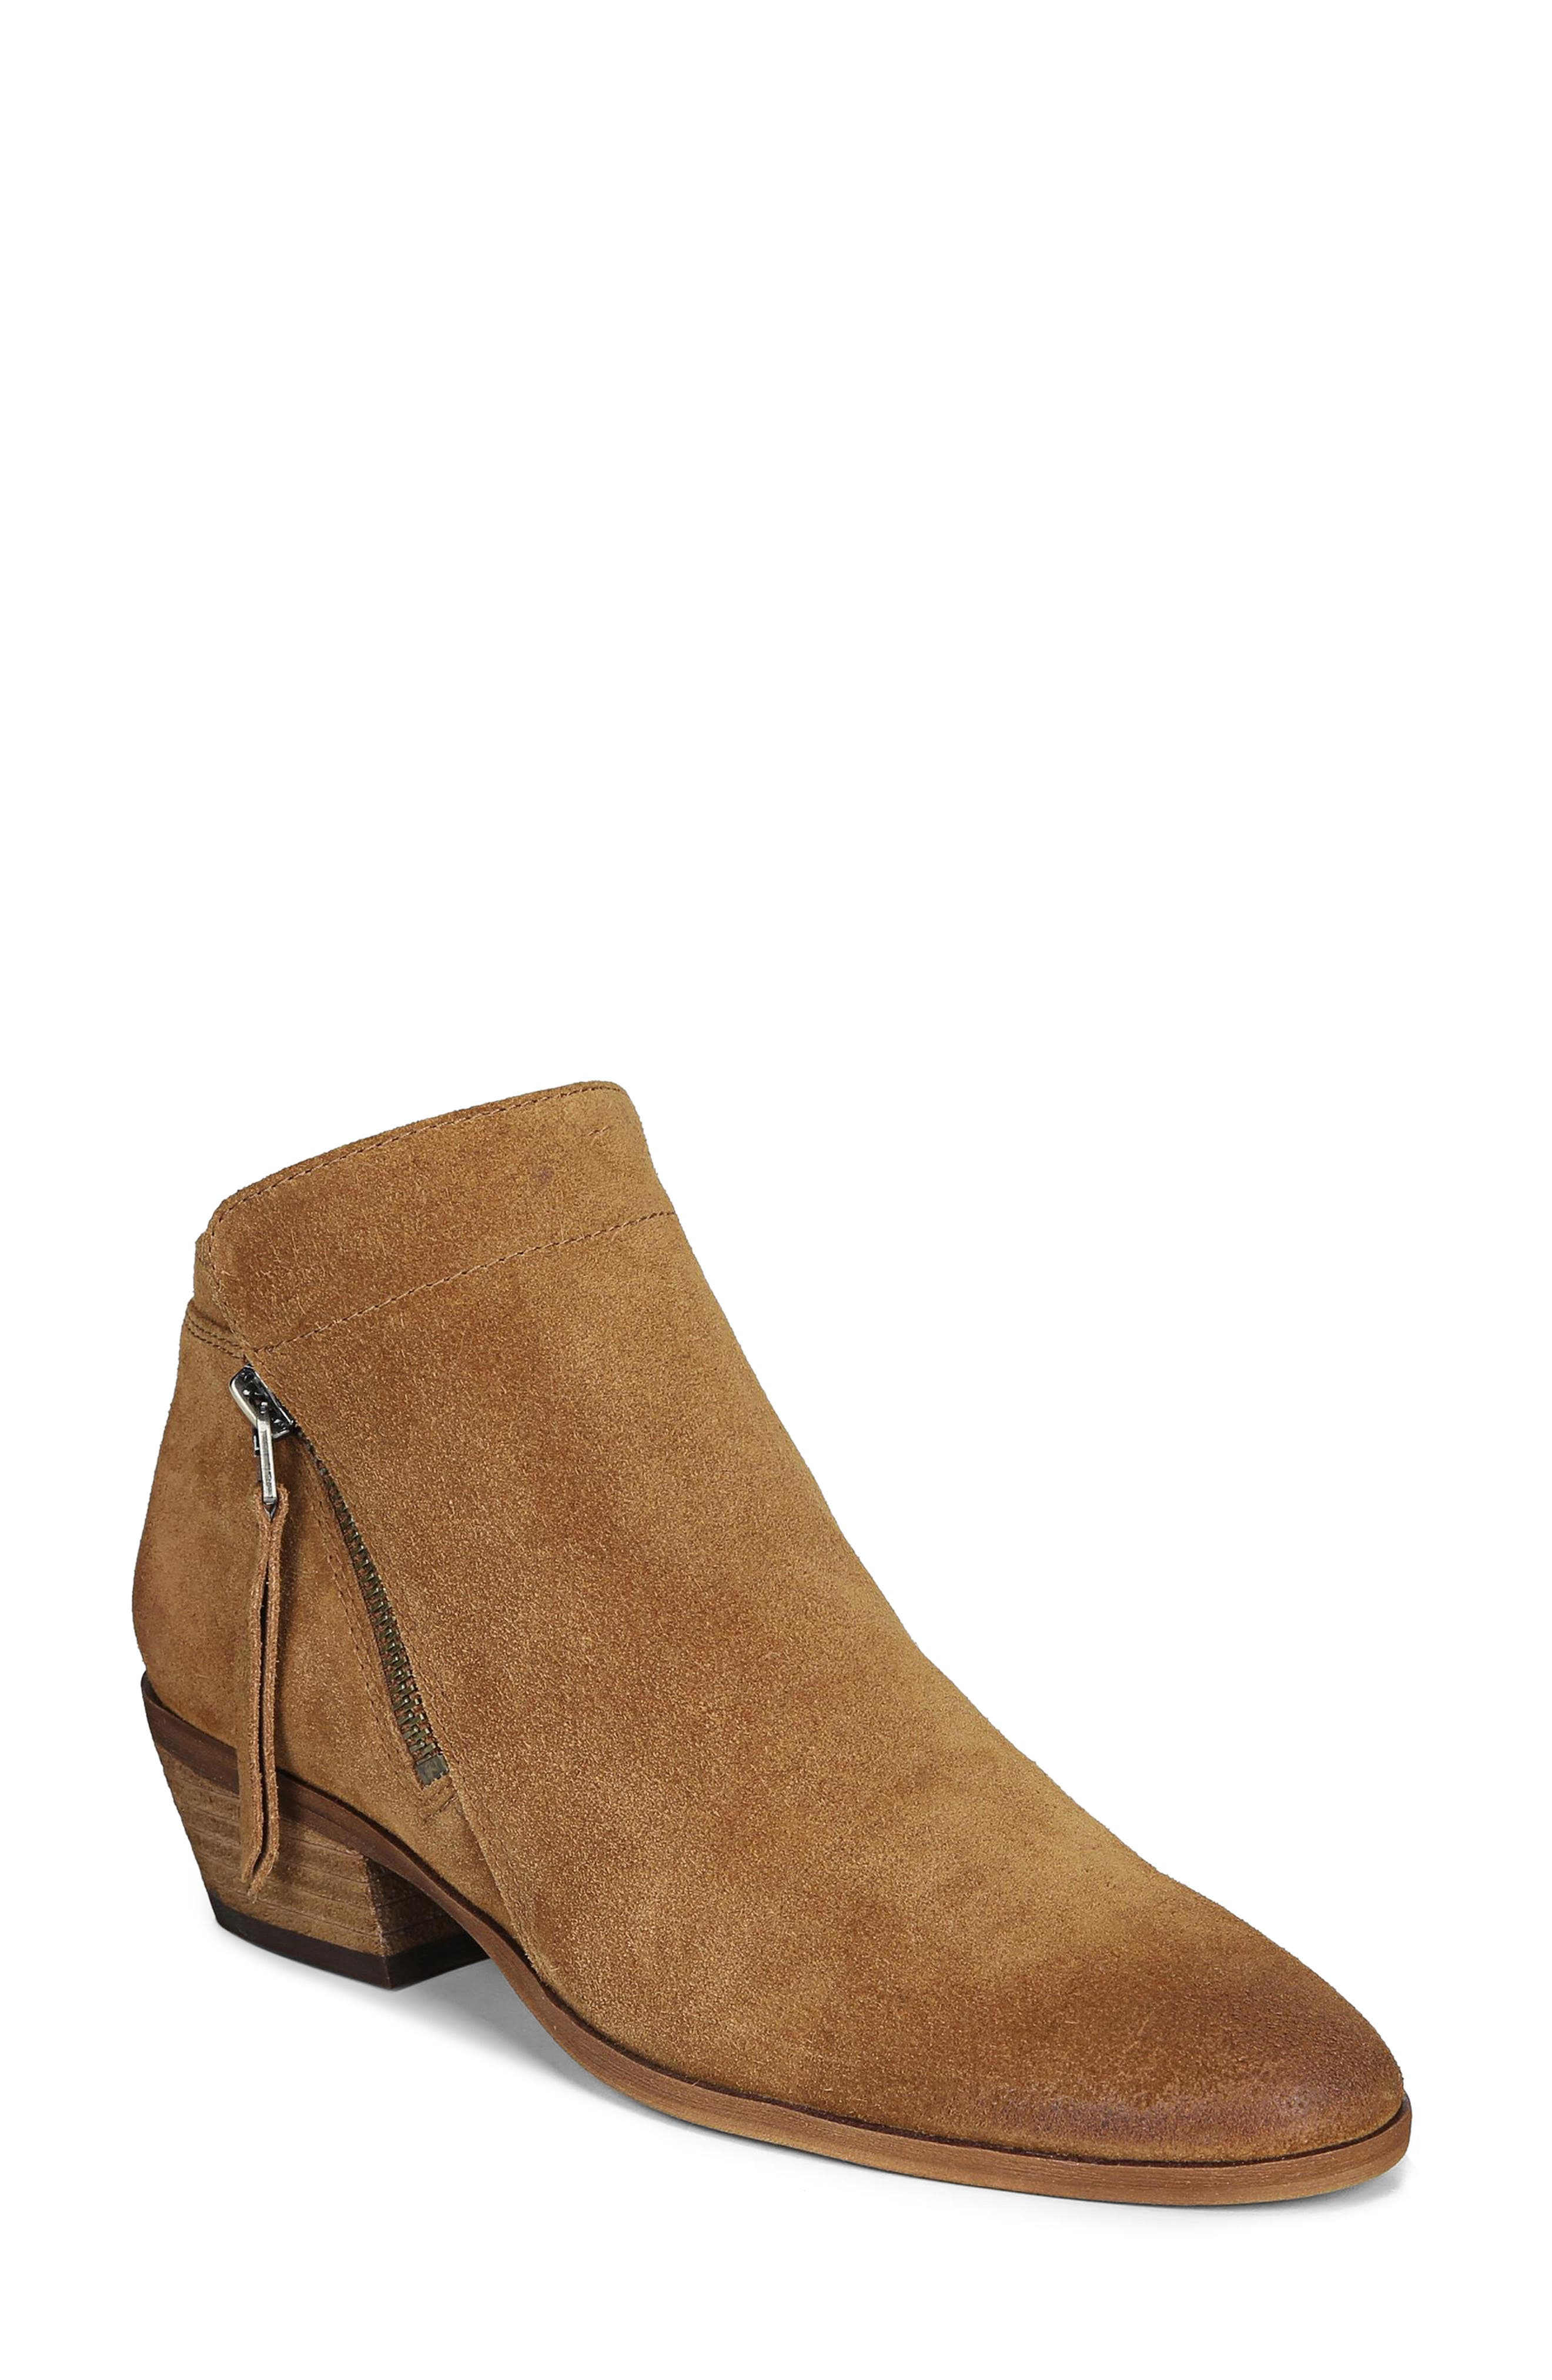 Packer Bootie,                             Main thumbnail 1, color,                             LUGGAGE SUEDE LEATHER